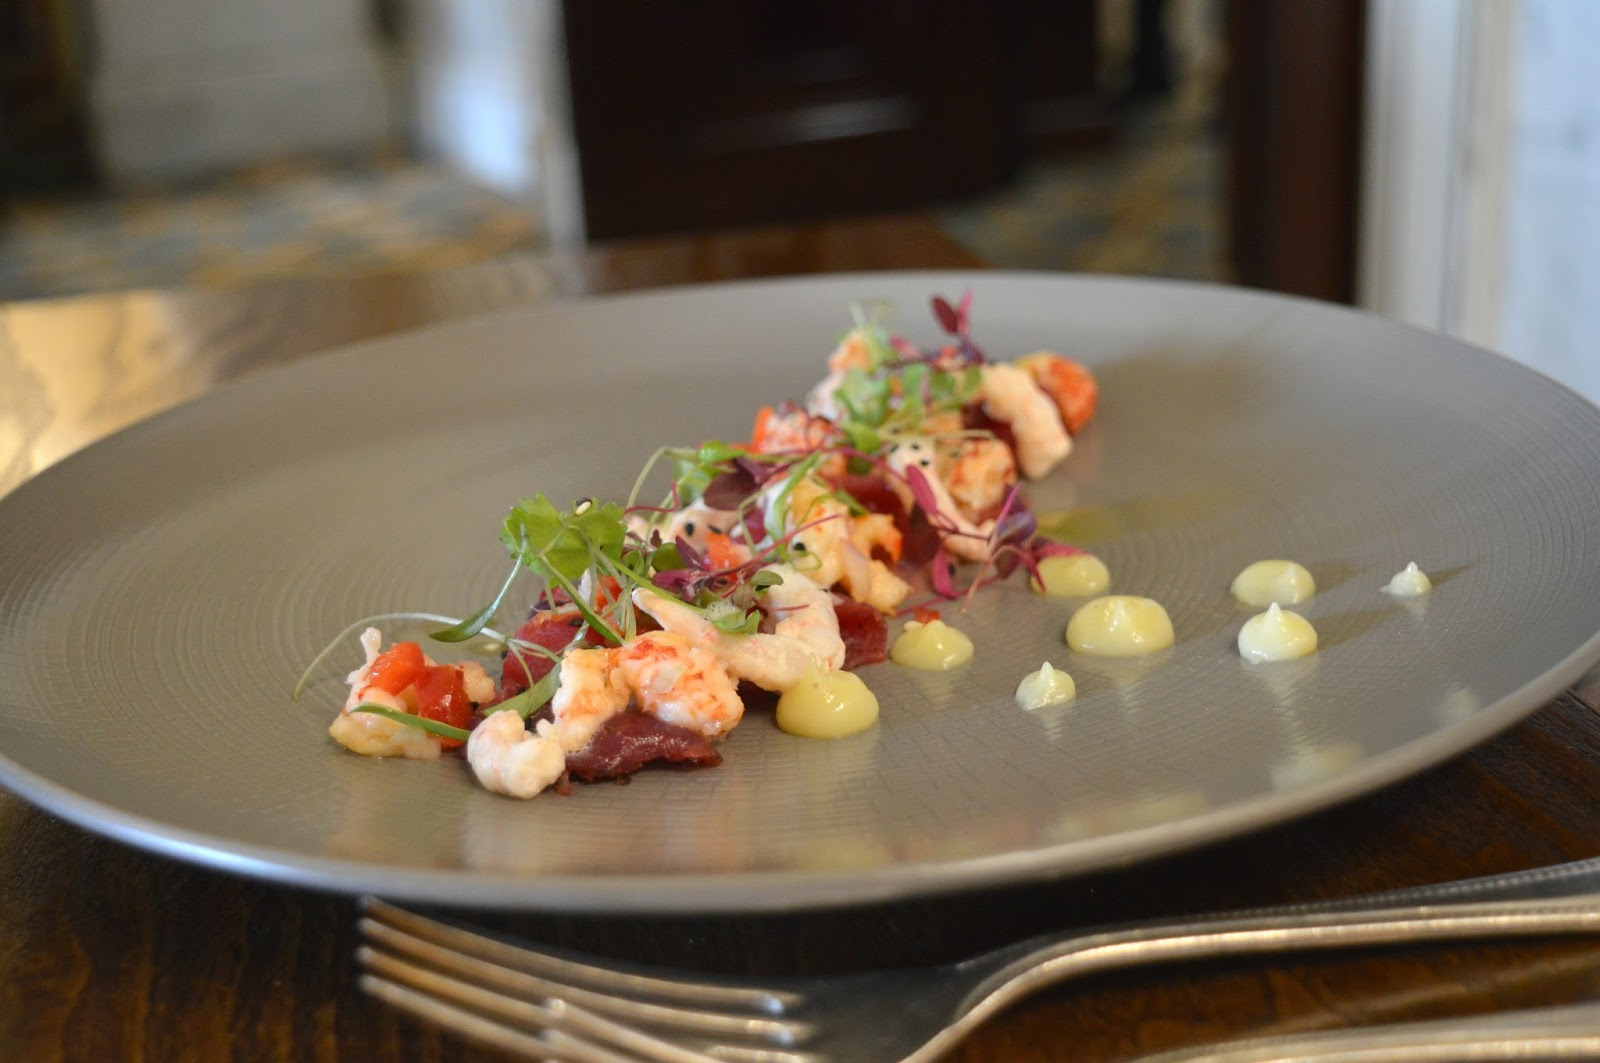 Sunday Lunch at Wynyard Hall - Salmon and Crayfish Gravlax